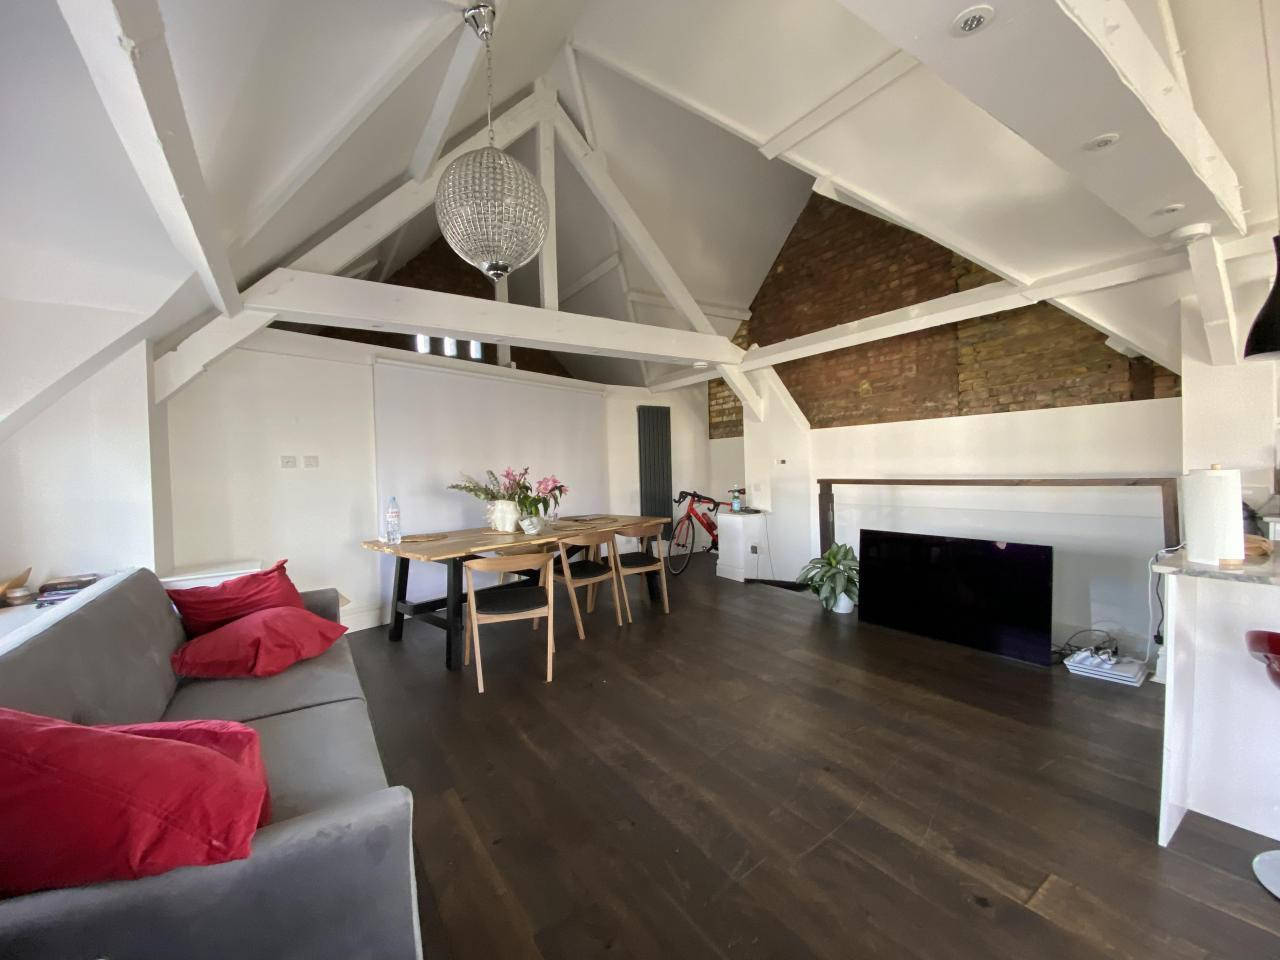 Bright room in Victorian style house - 5